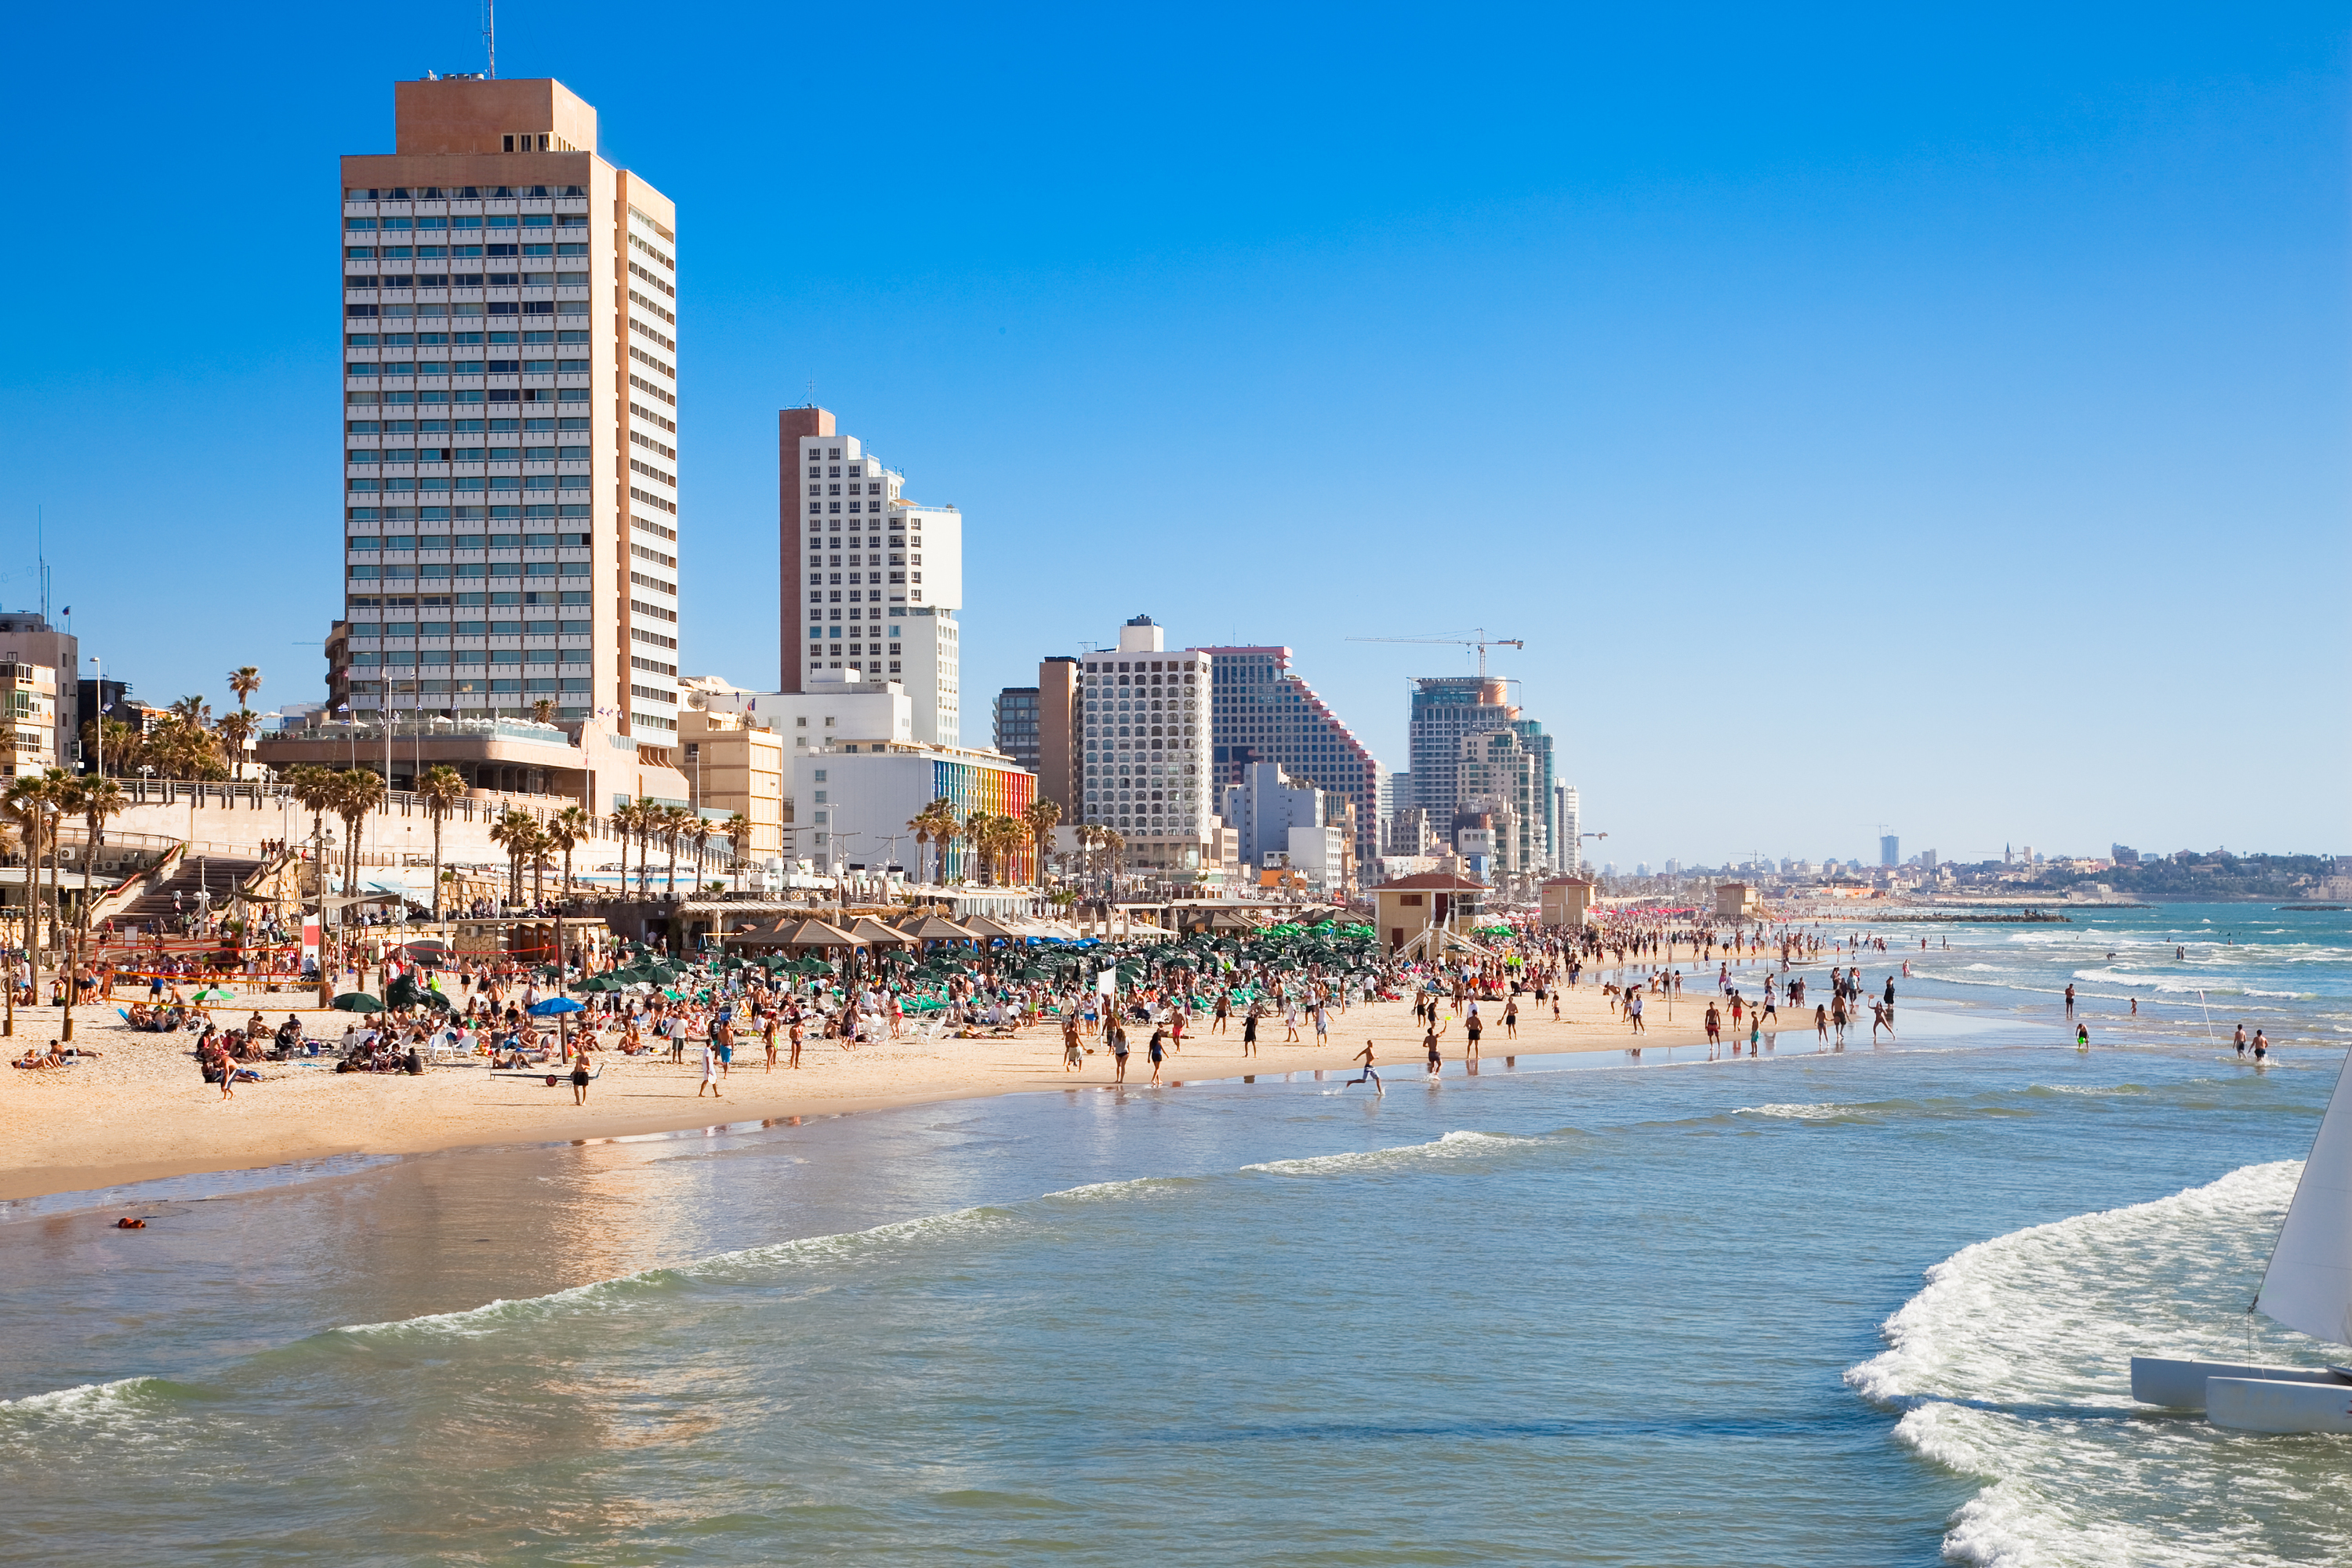 Izrael Image: 7 Tips To Enjoy Tel Aviv Like A Local